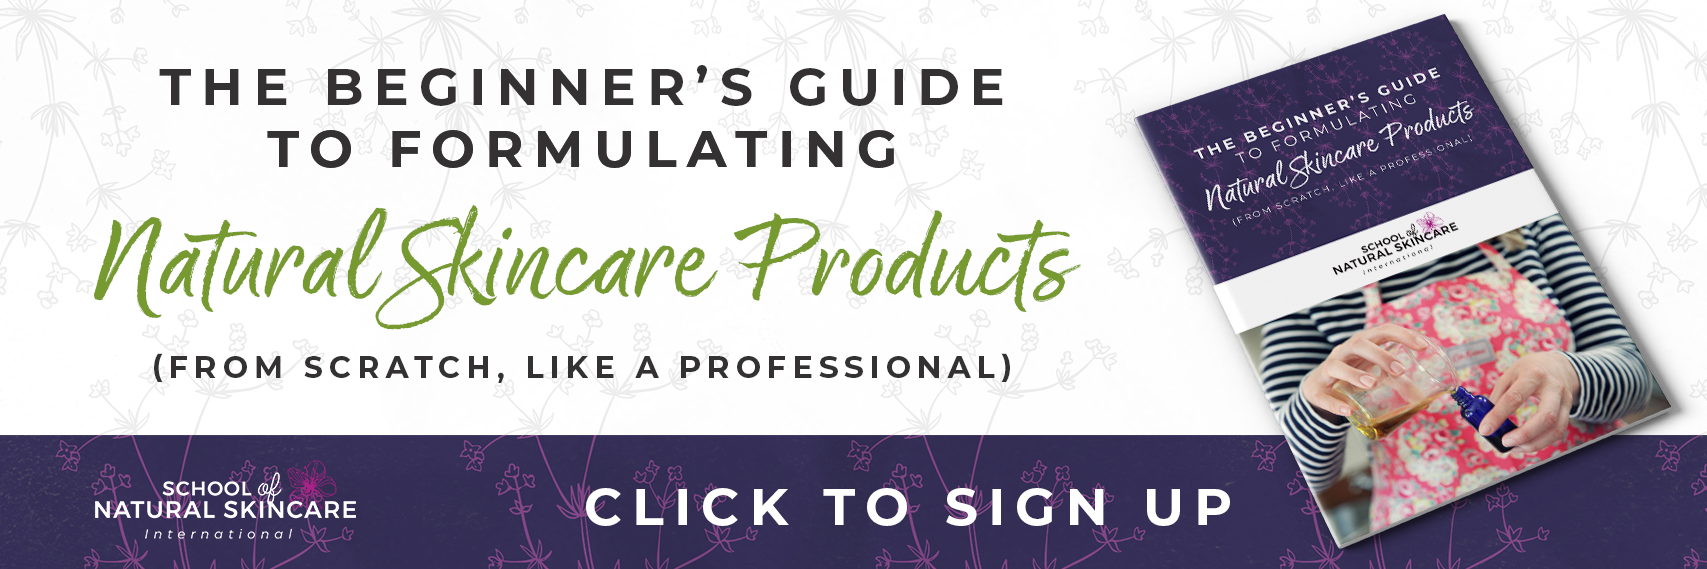 Do Your Courses Certify Me to Make and Sell Skincare Products? What You Need to Know about Qualifications and Certifications Beauty Business Tips Skincare Formulation